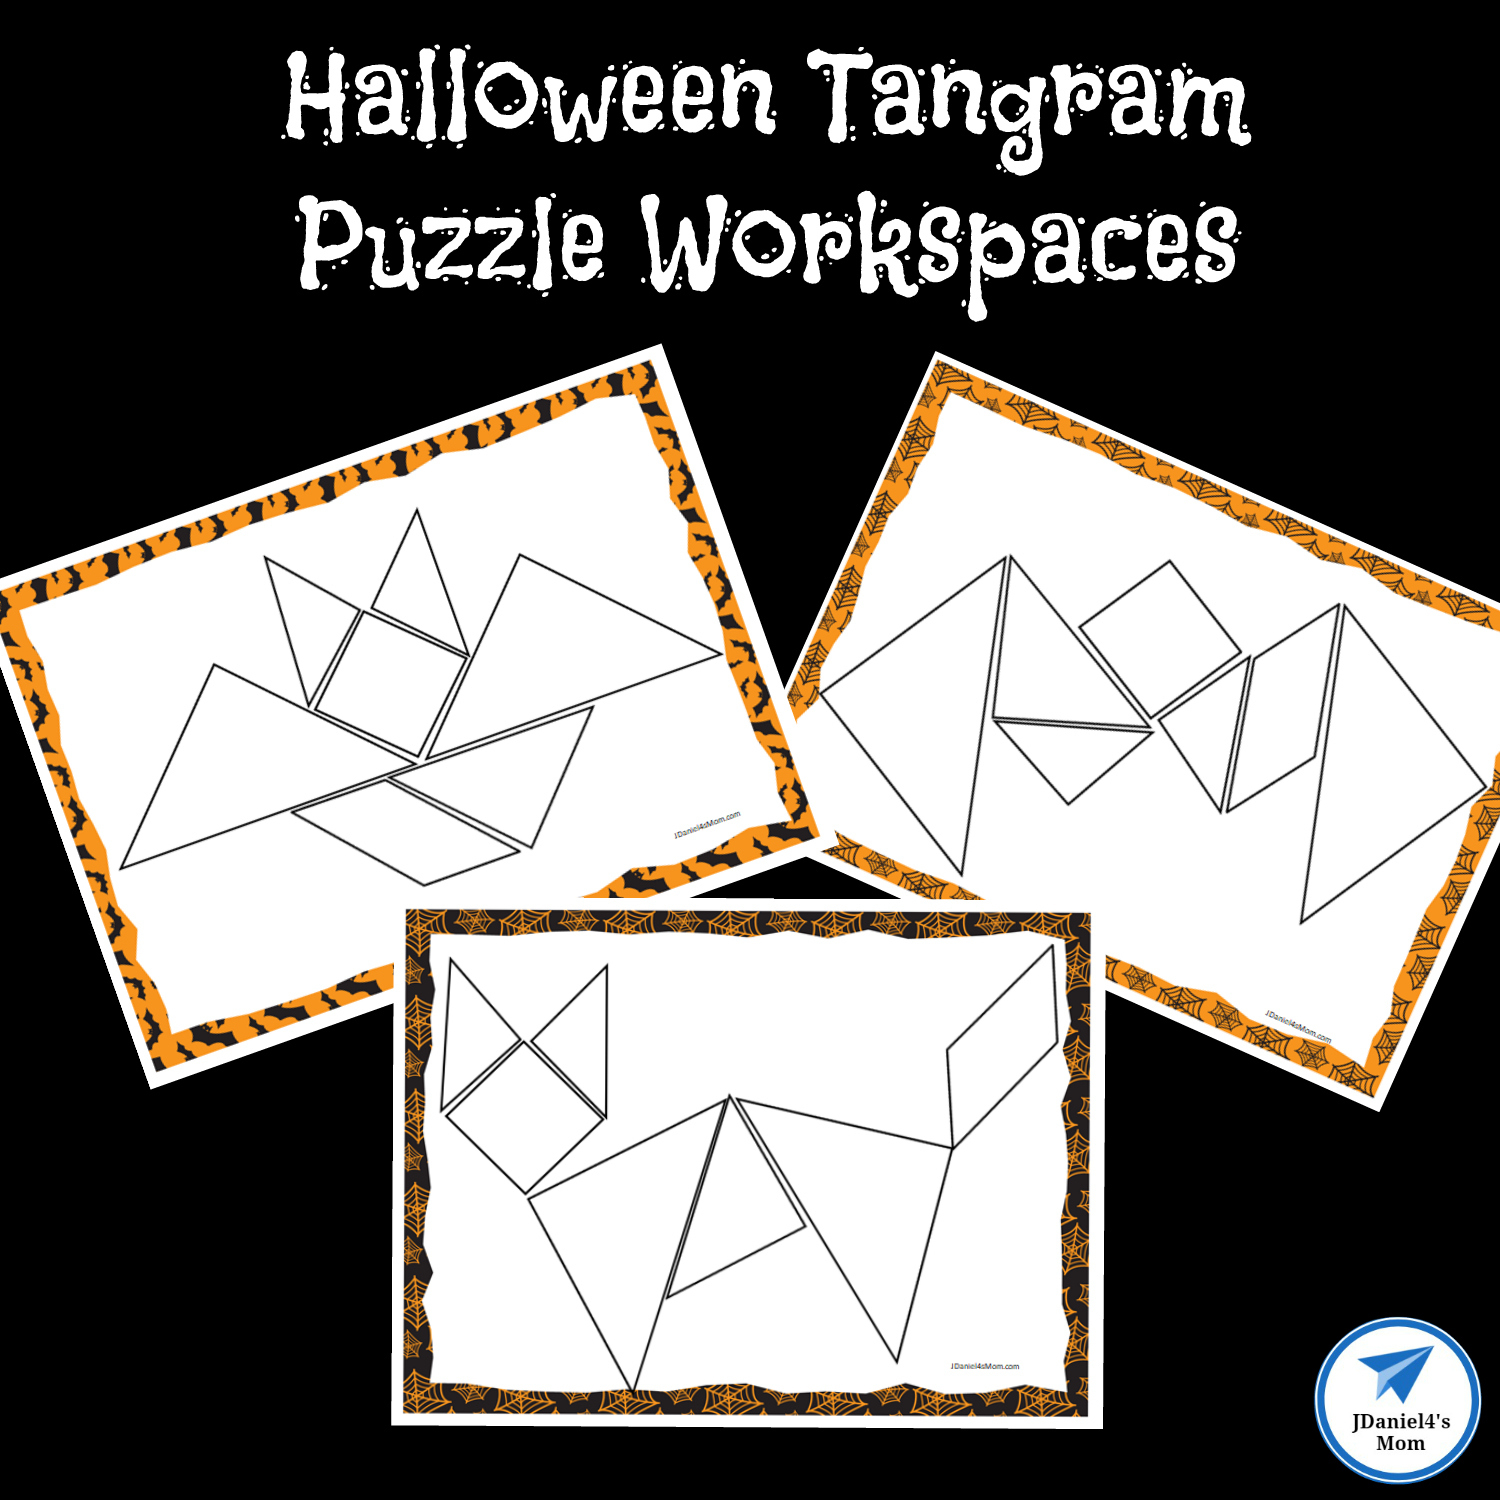 Halloween Themed Printable Tangram Puzzles - Jdaniel4S Mom - Printable Tangram Puzzles